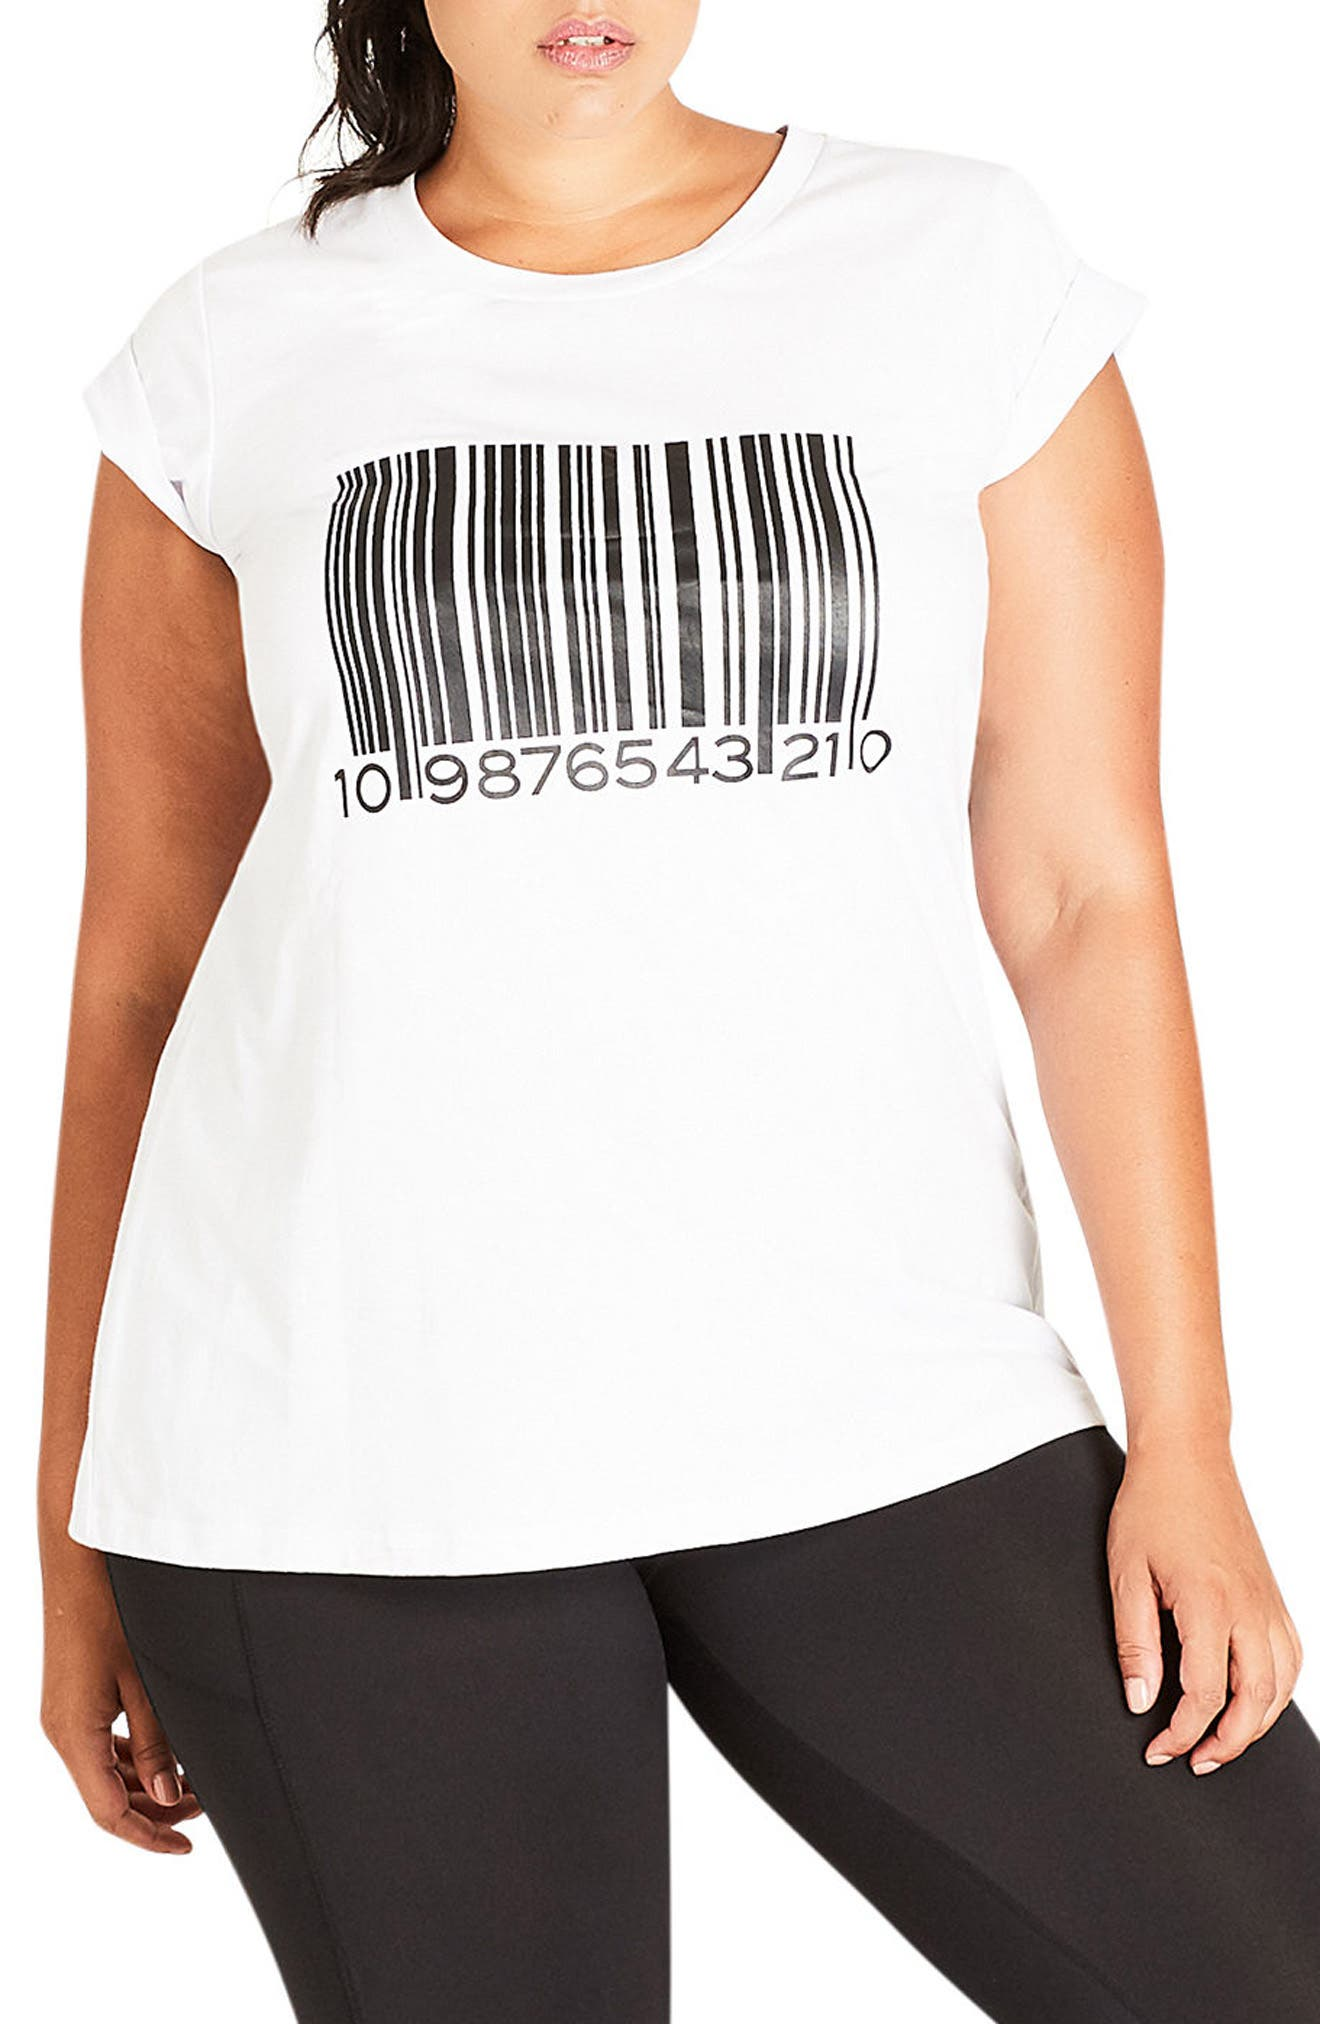 City Chic Barcode Tee (Plus Size)